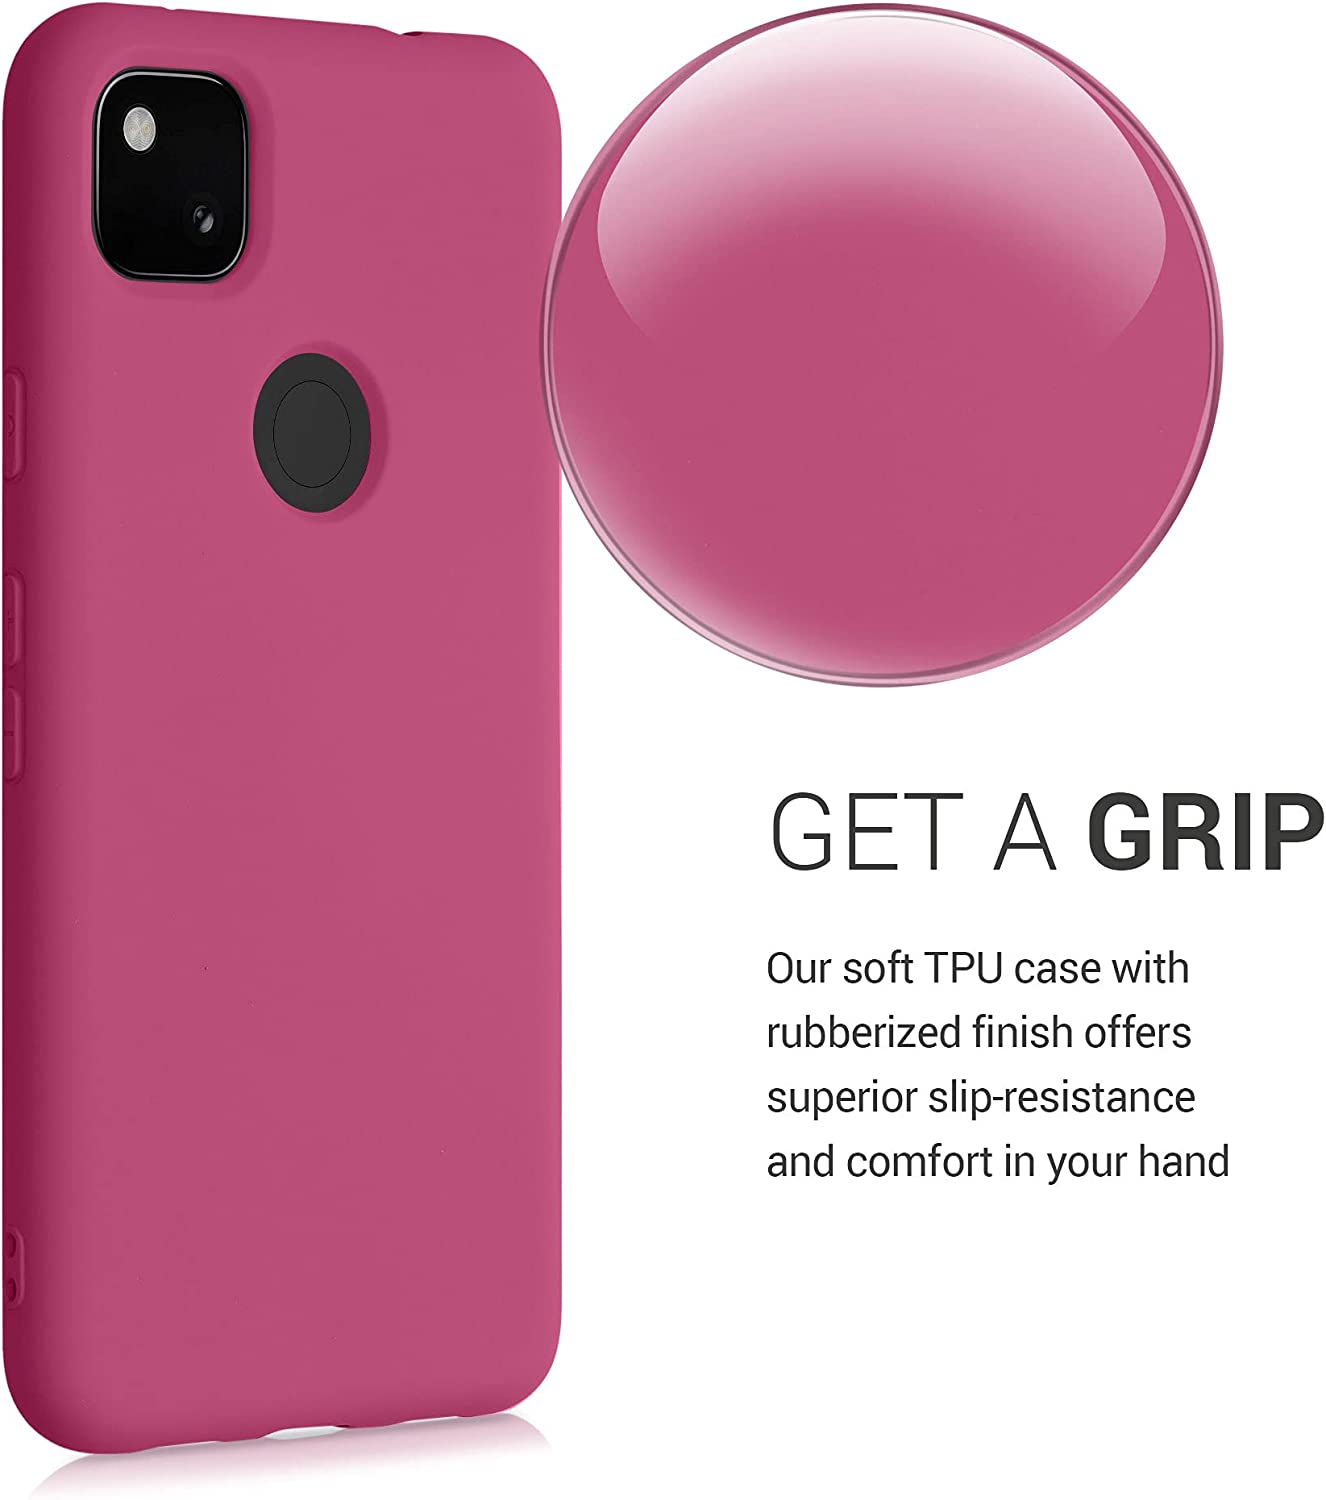 kwmobile Case Compatible with Google Pixel 4a - Case Soft TPU Slim Protective Cover for Phone - Raspberry Sorbet